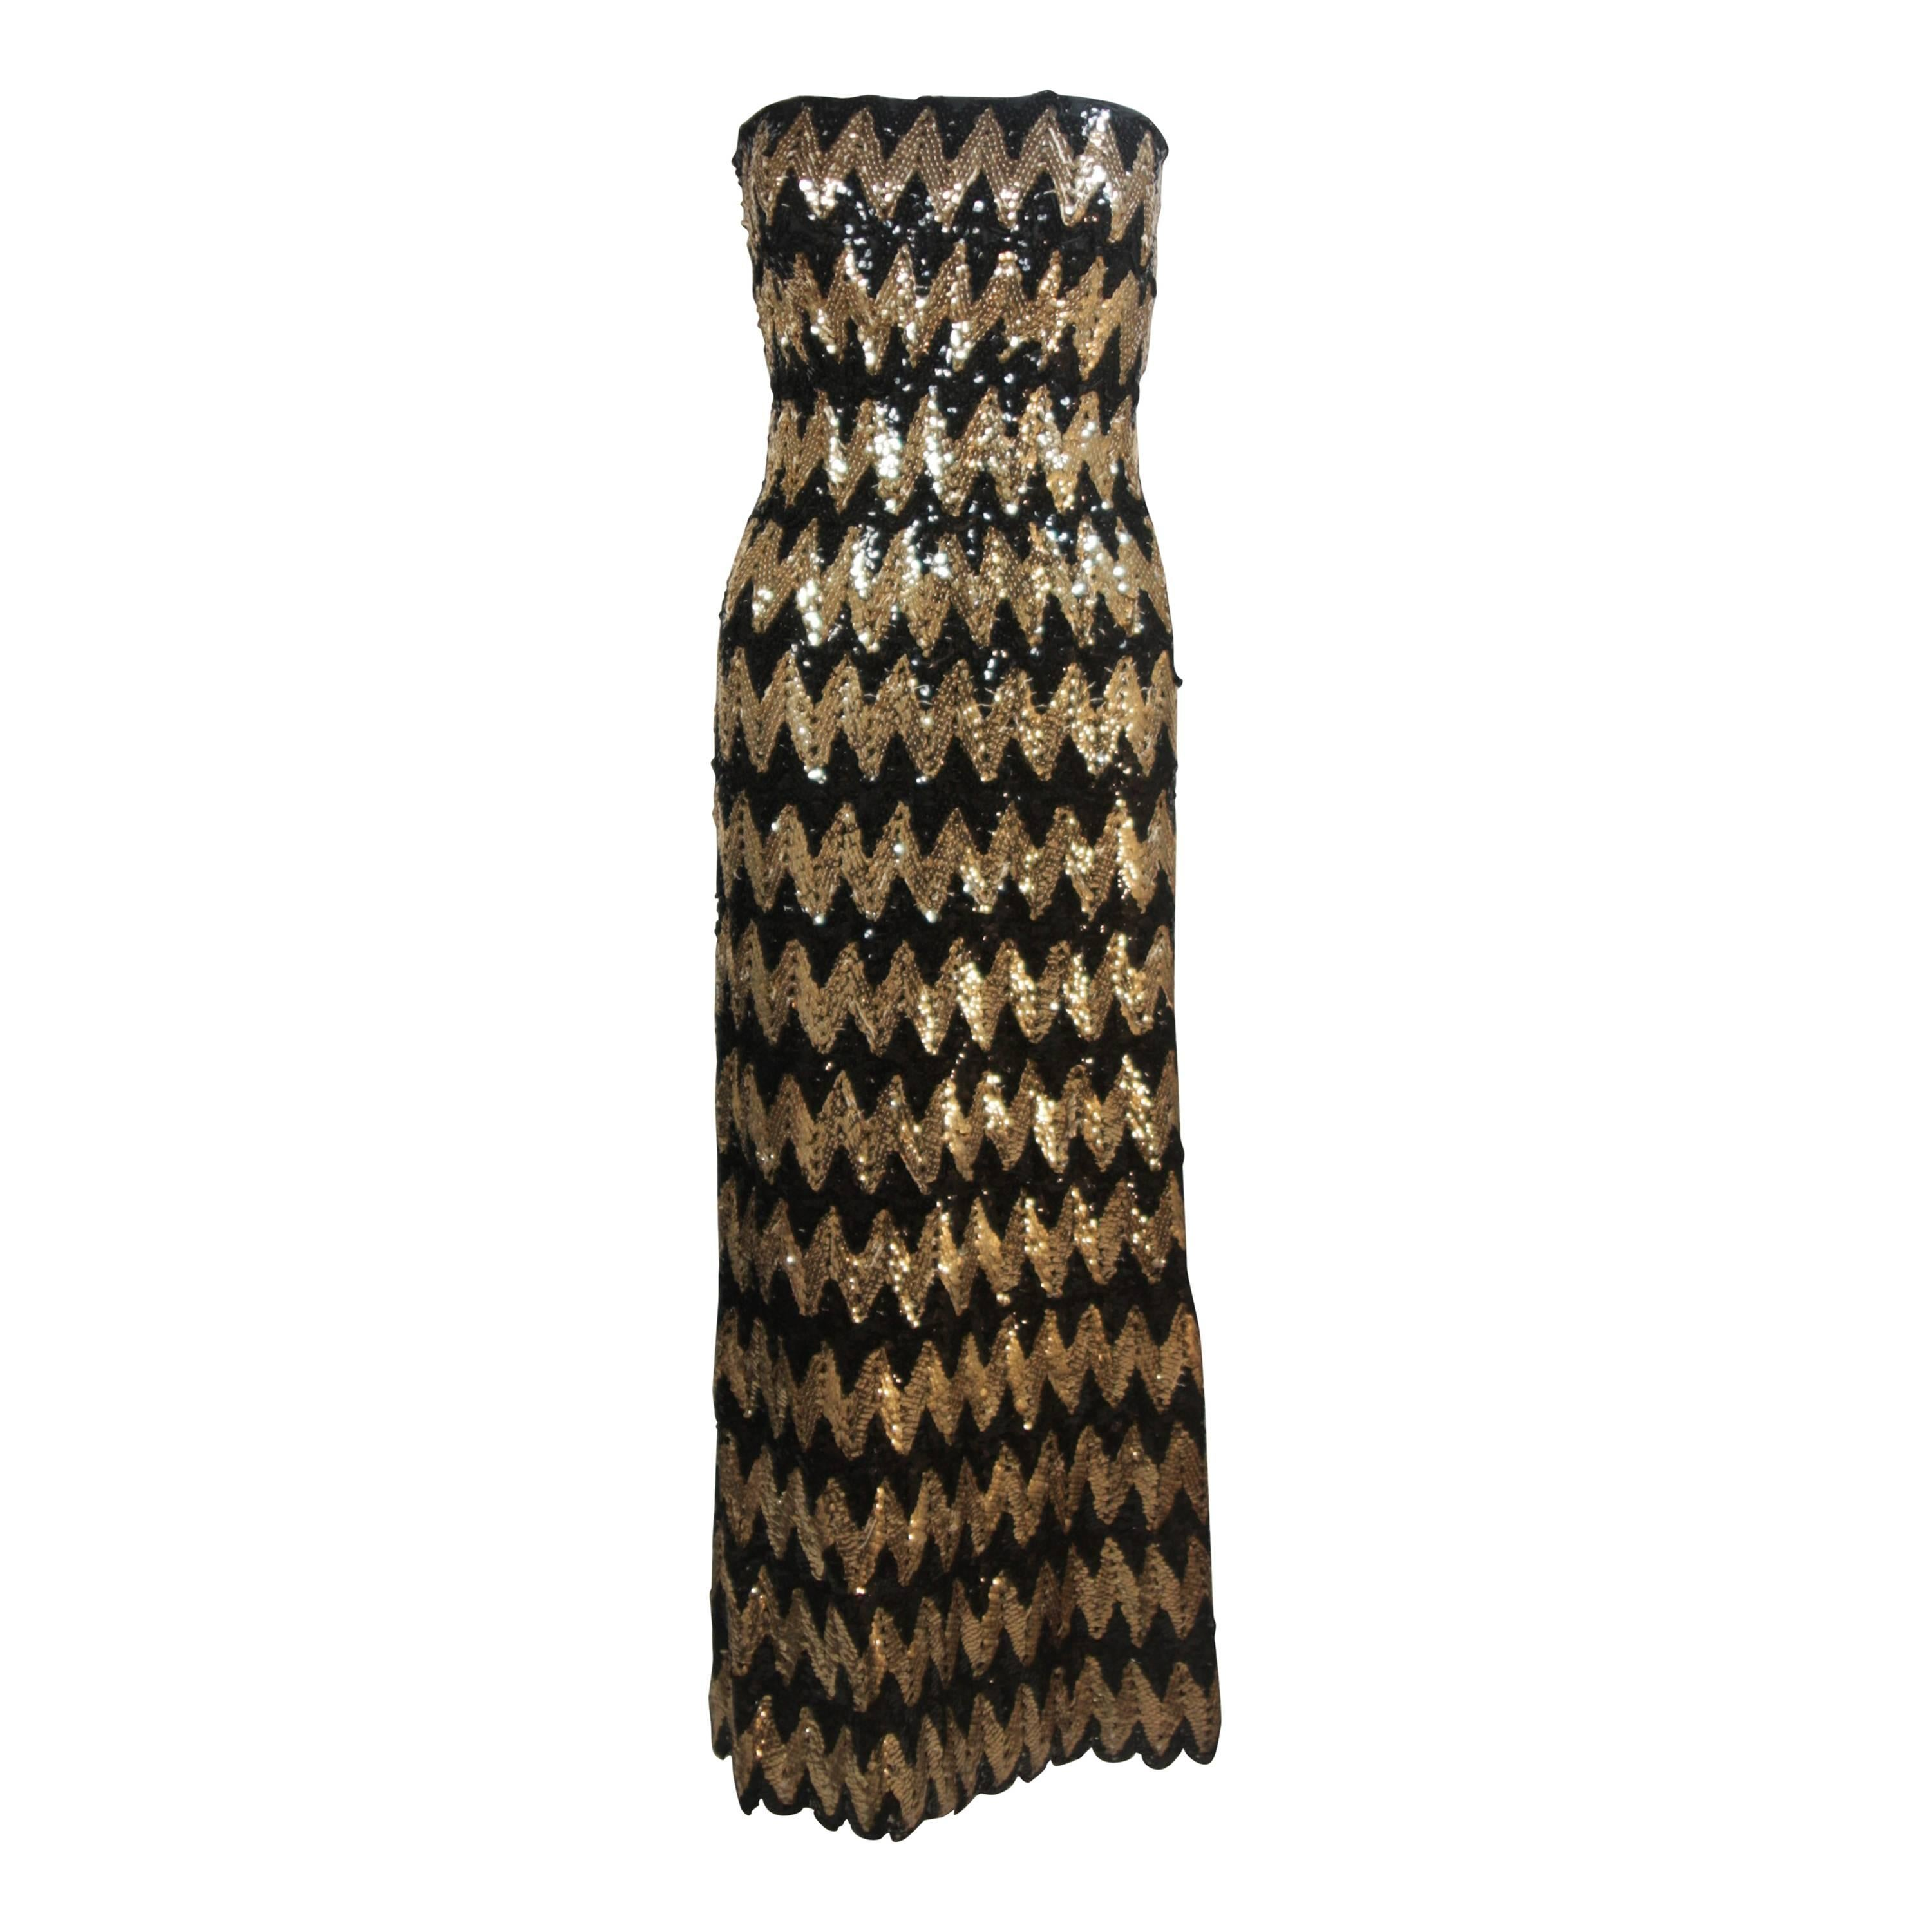 SCAASI Strapless Black and Gold Knit Sequin Gown Size 2-4